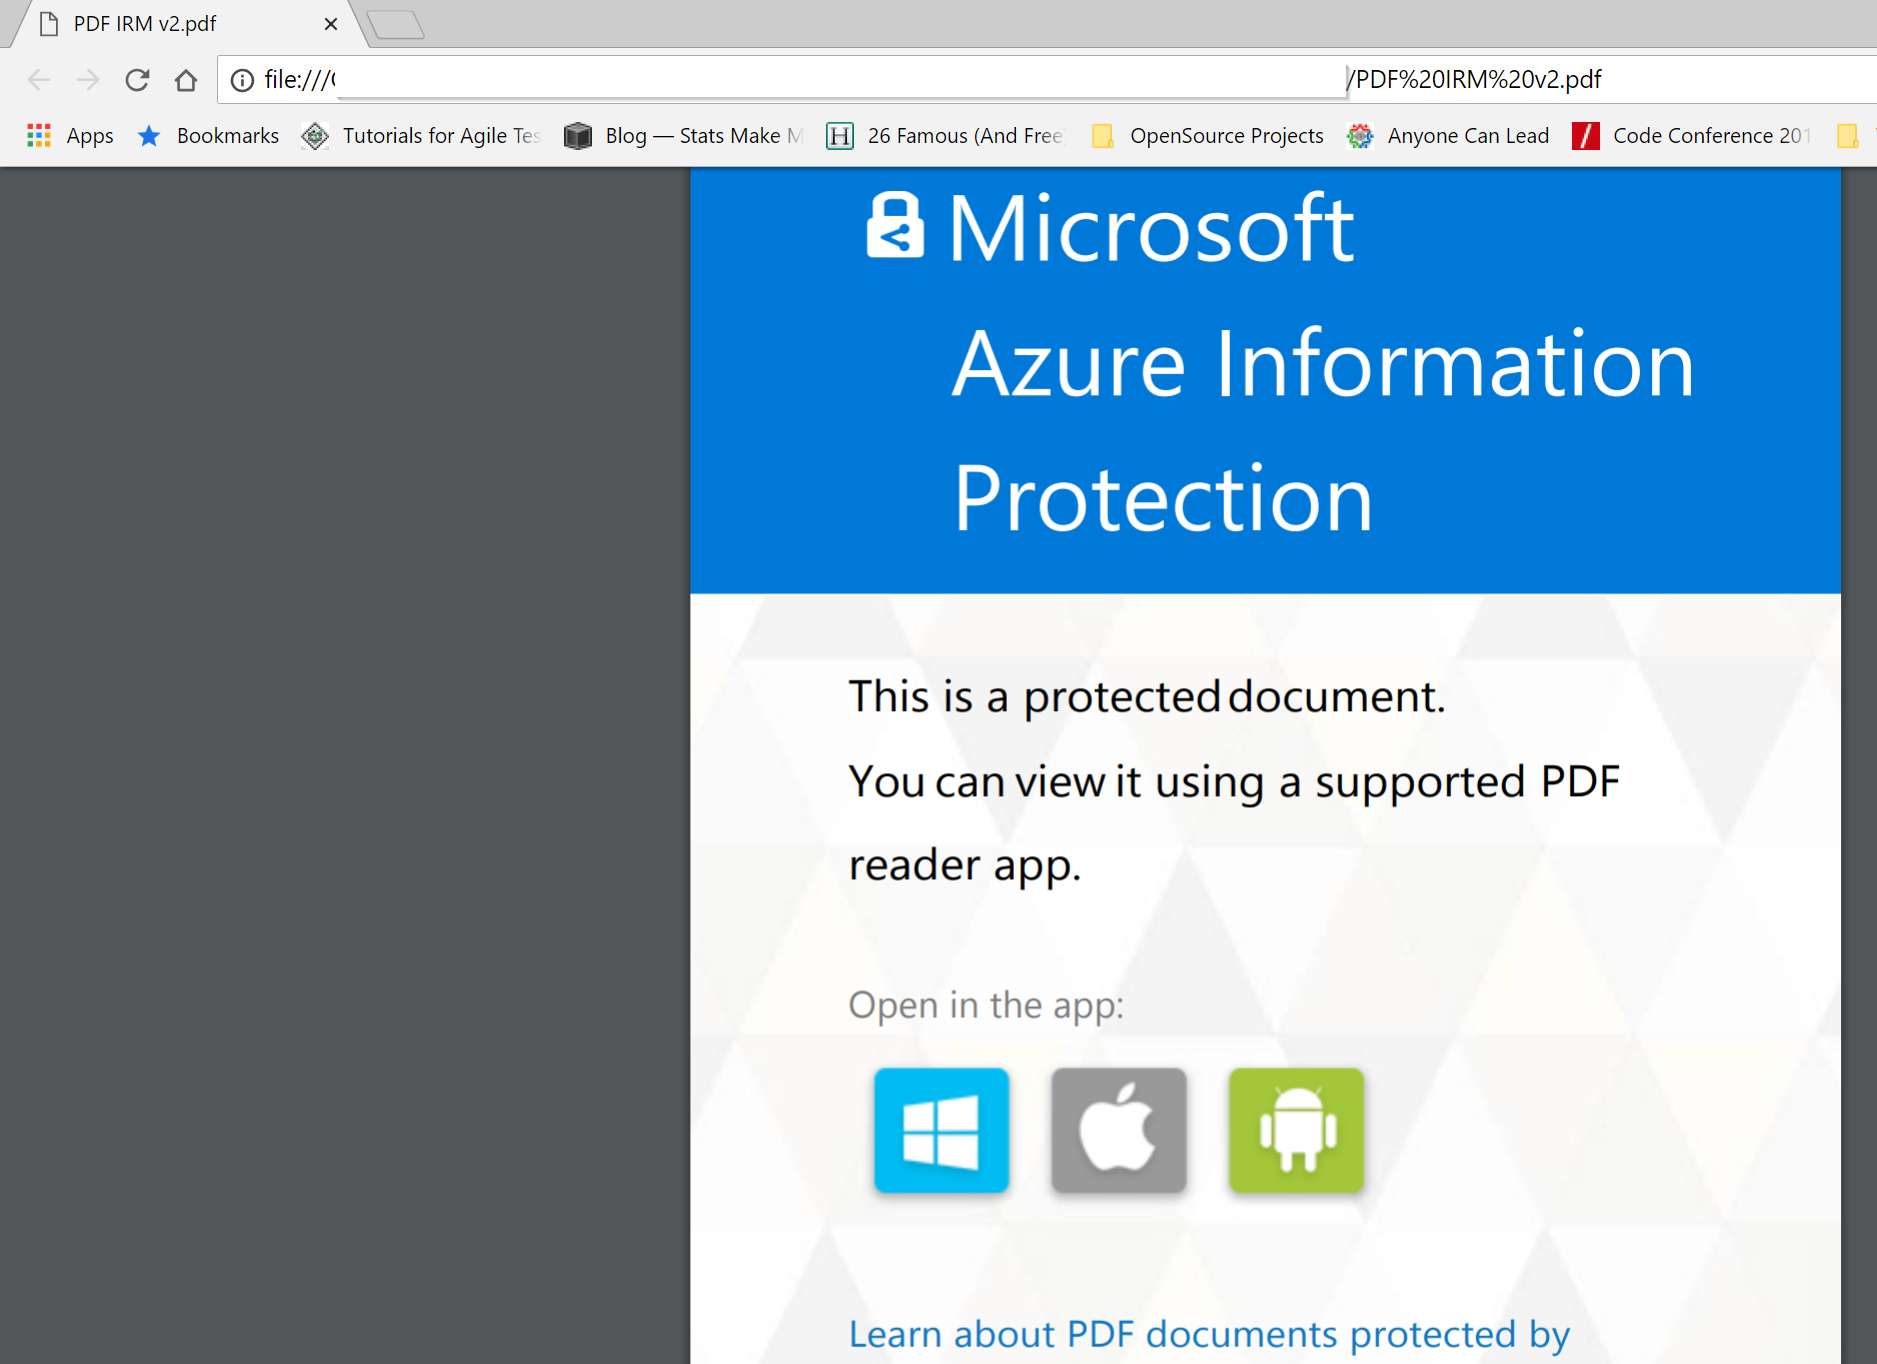 Starting Today! Use Adobe Acrobat Reader for PDFs protected by